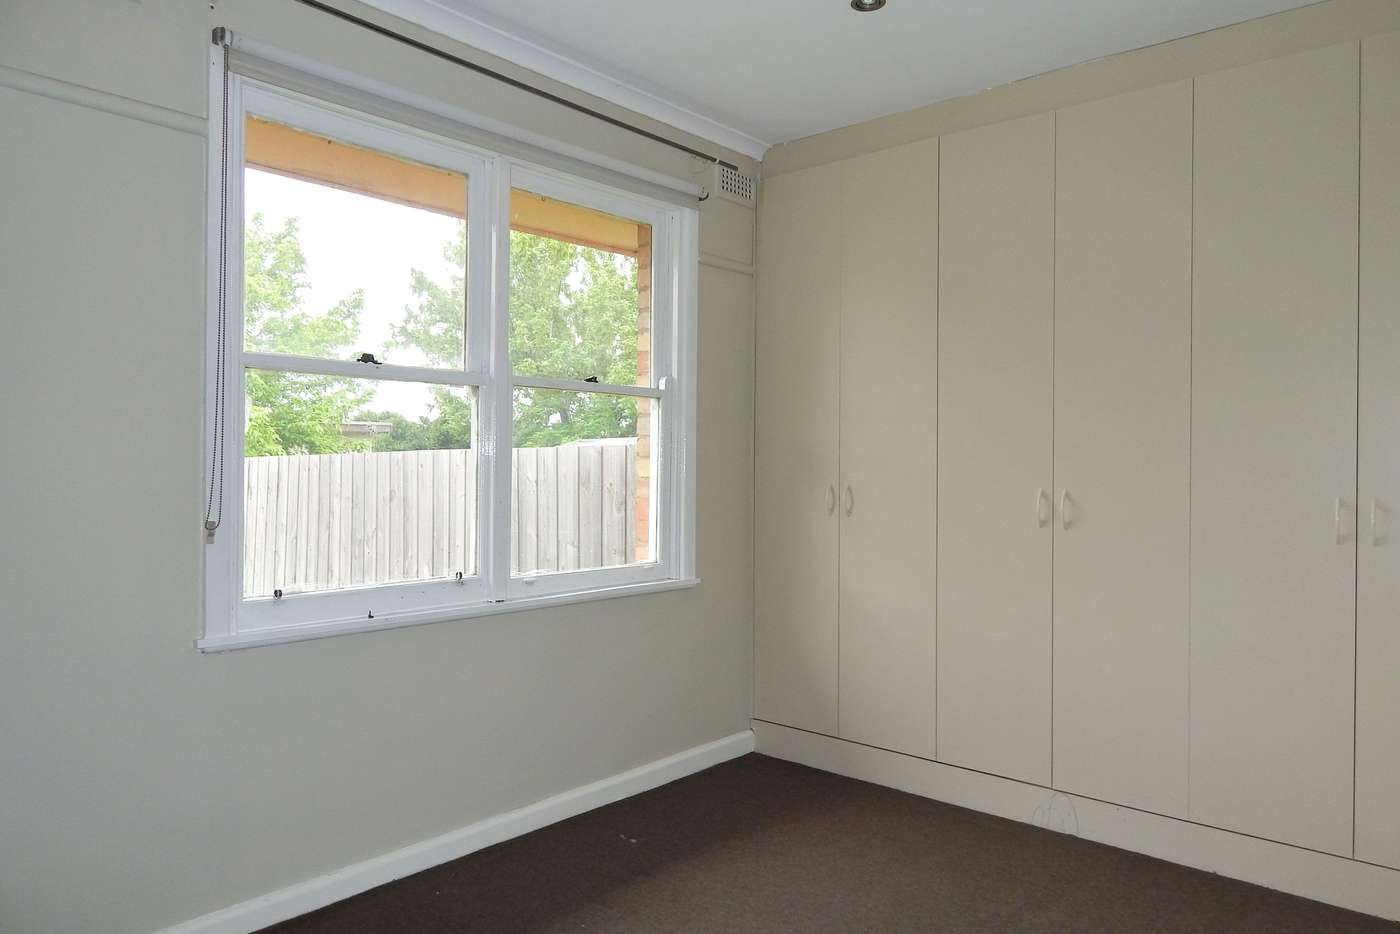 Sixth view of Homely house listing, 7 Kilmore Avenue, Reservoir VIC 3073